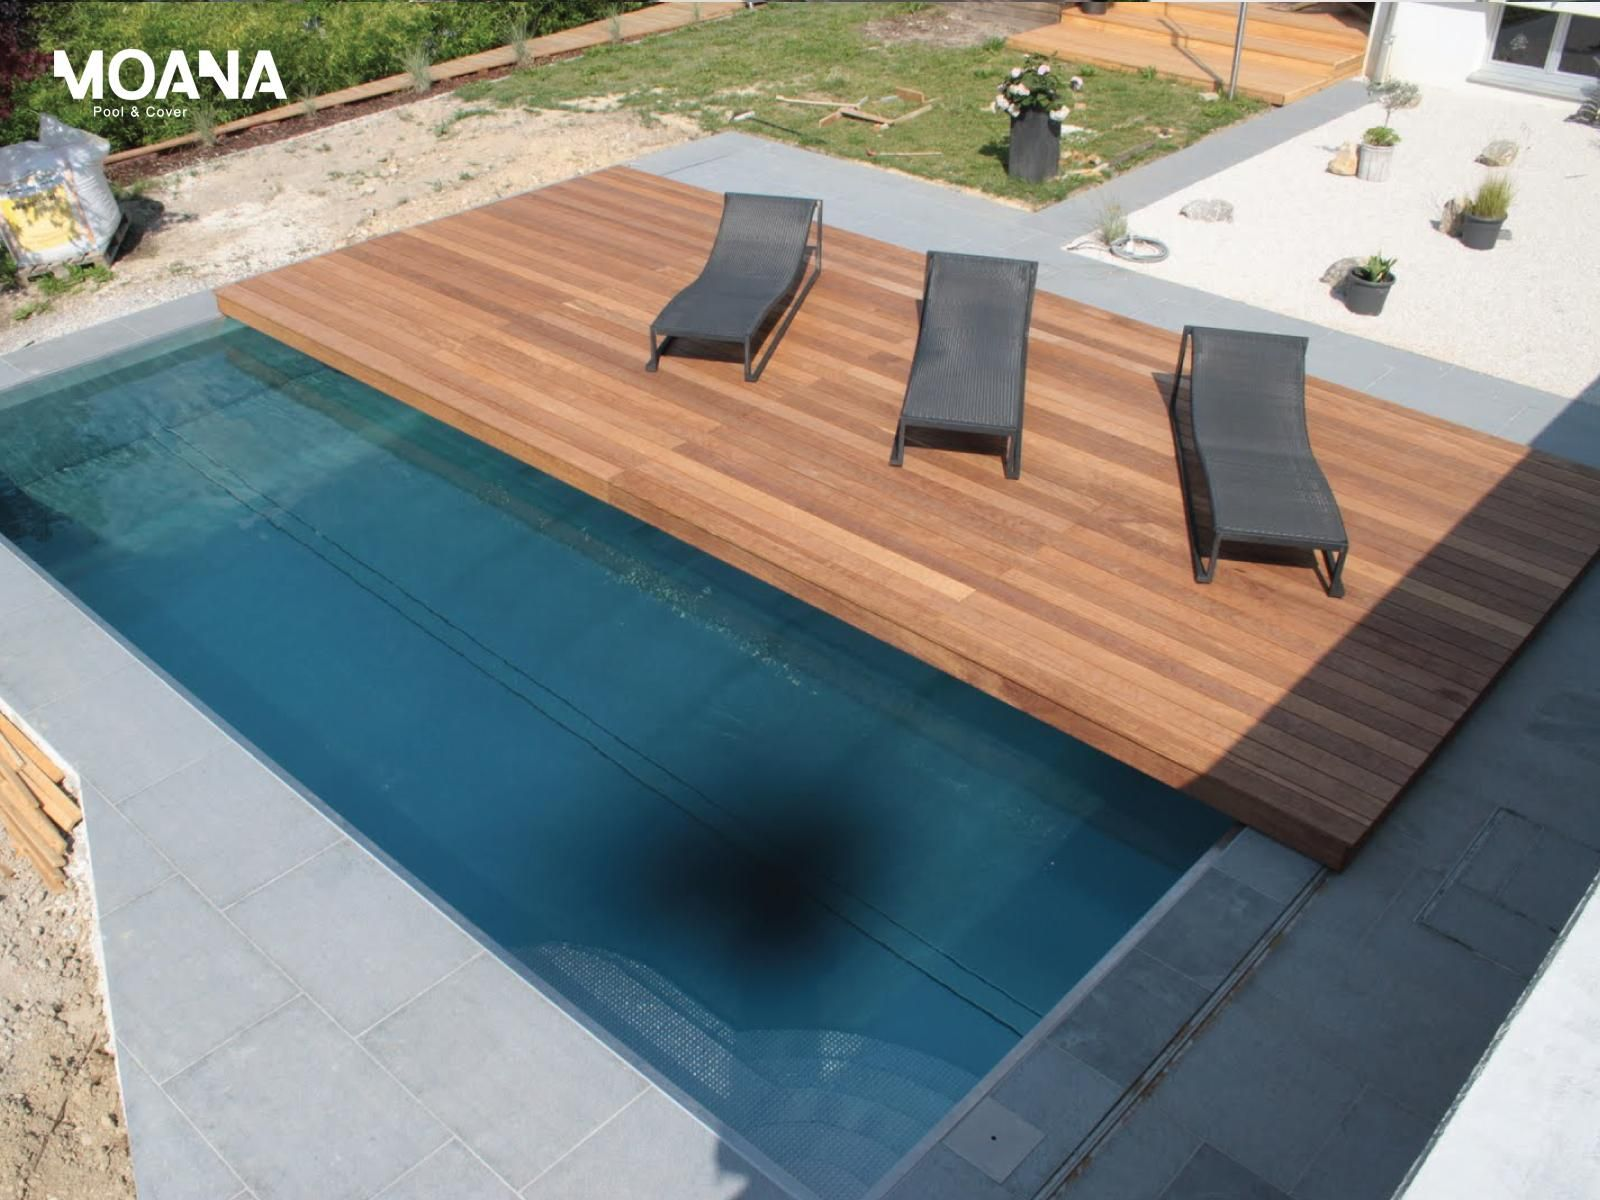 Wpc Terrasse Für Pool Sliding Deck To Cover Pool When Not In Use Perfect Pools